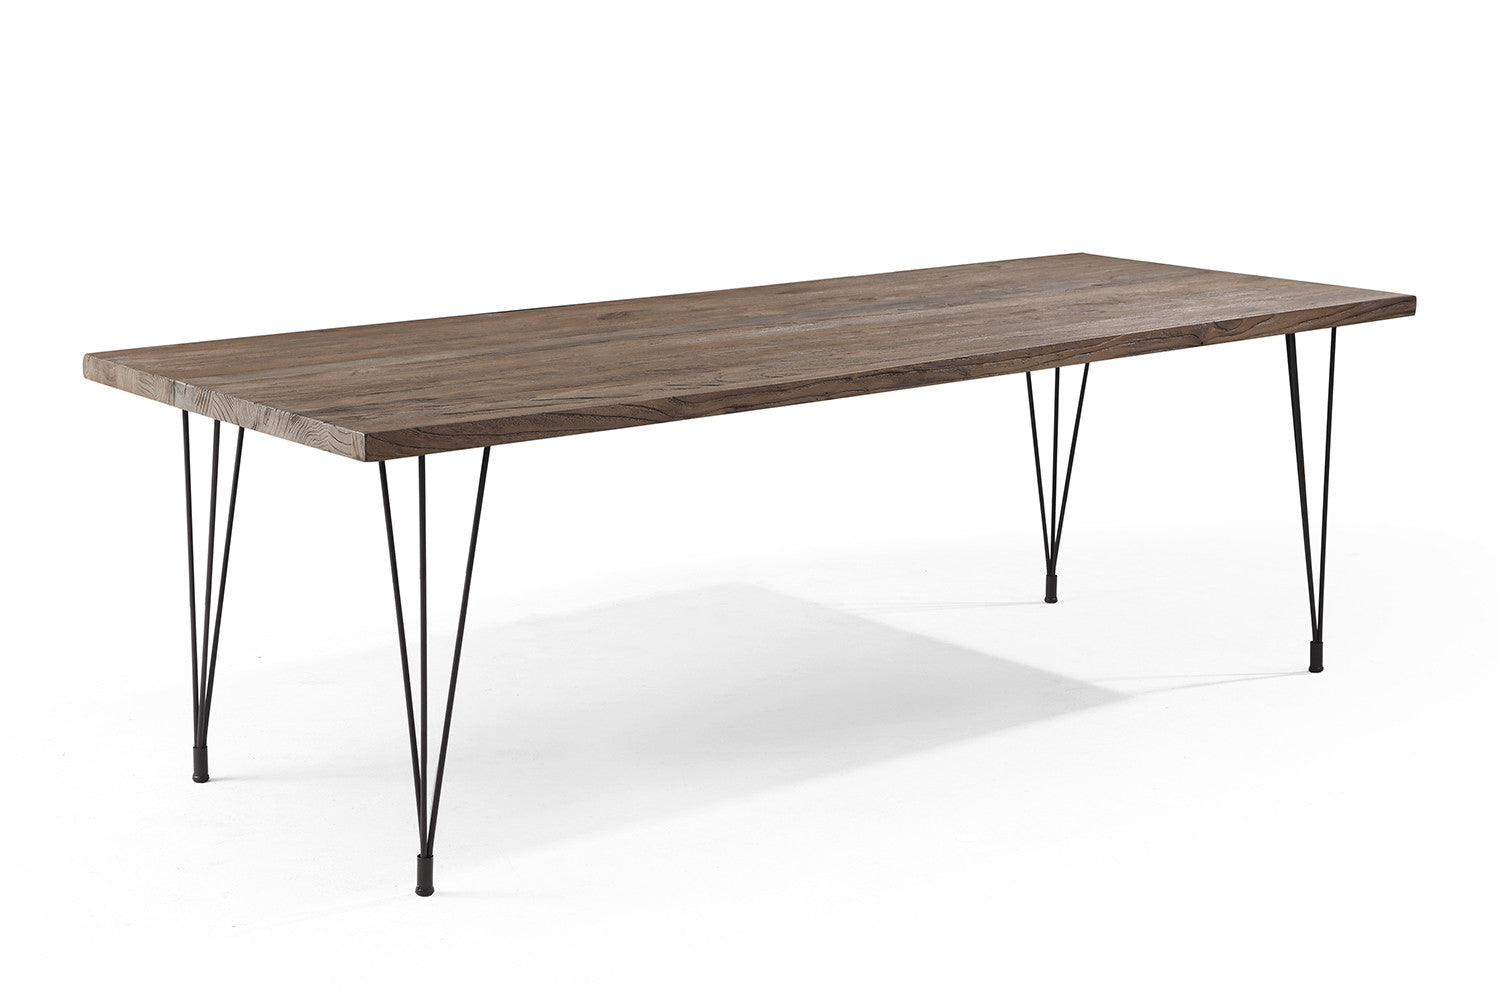 Table manger industrielle pieds en epingle tm02 for Table a diner industrielle